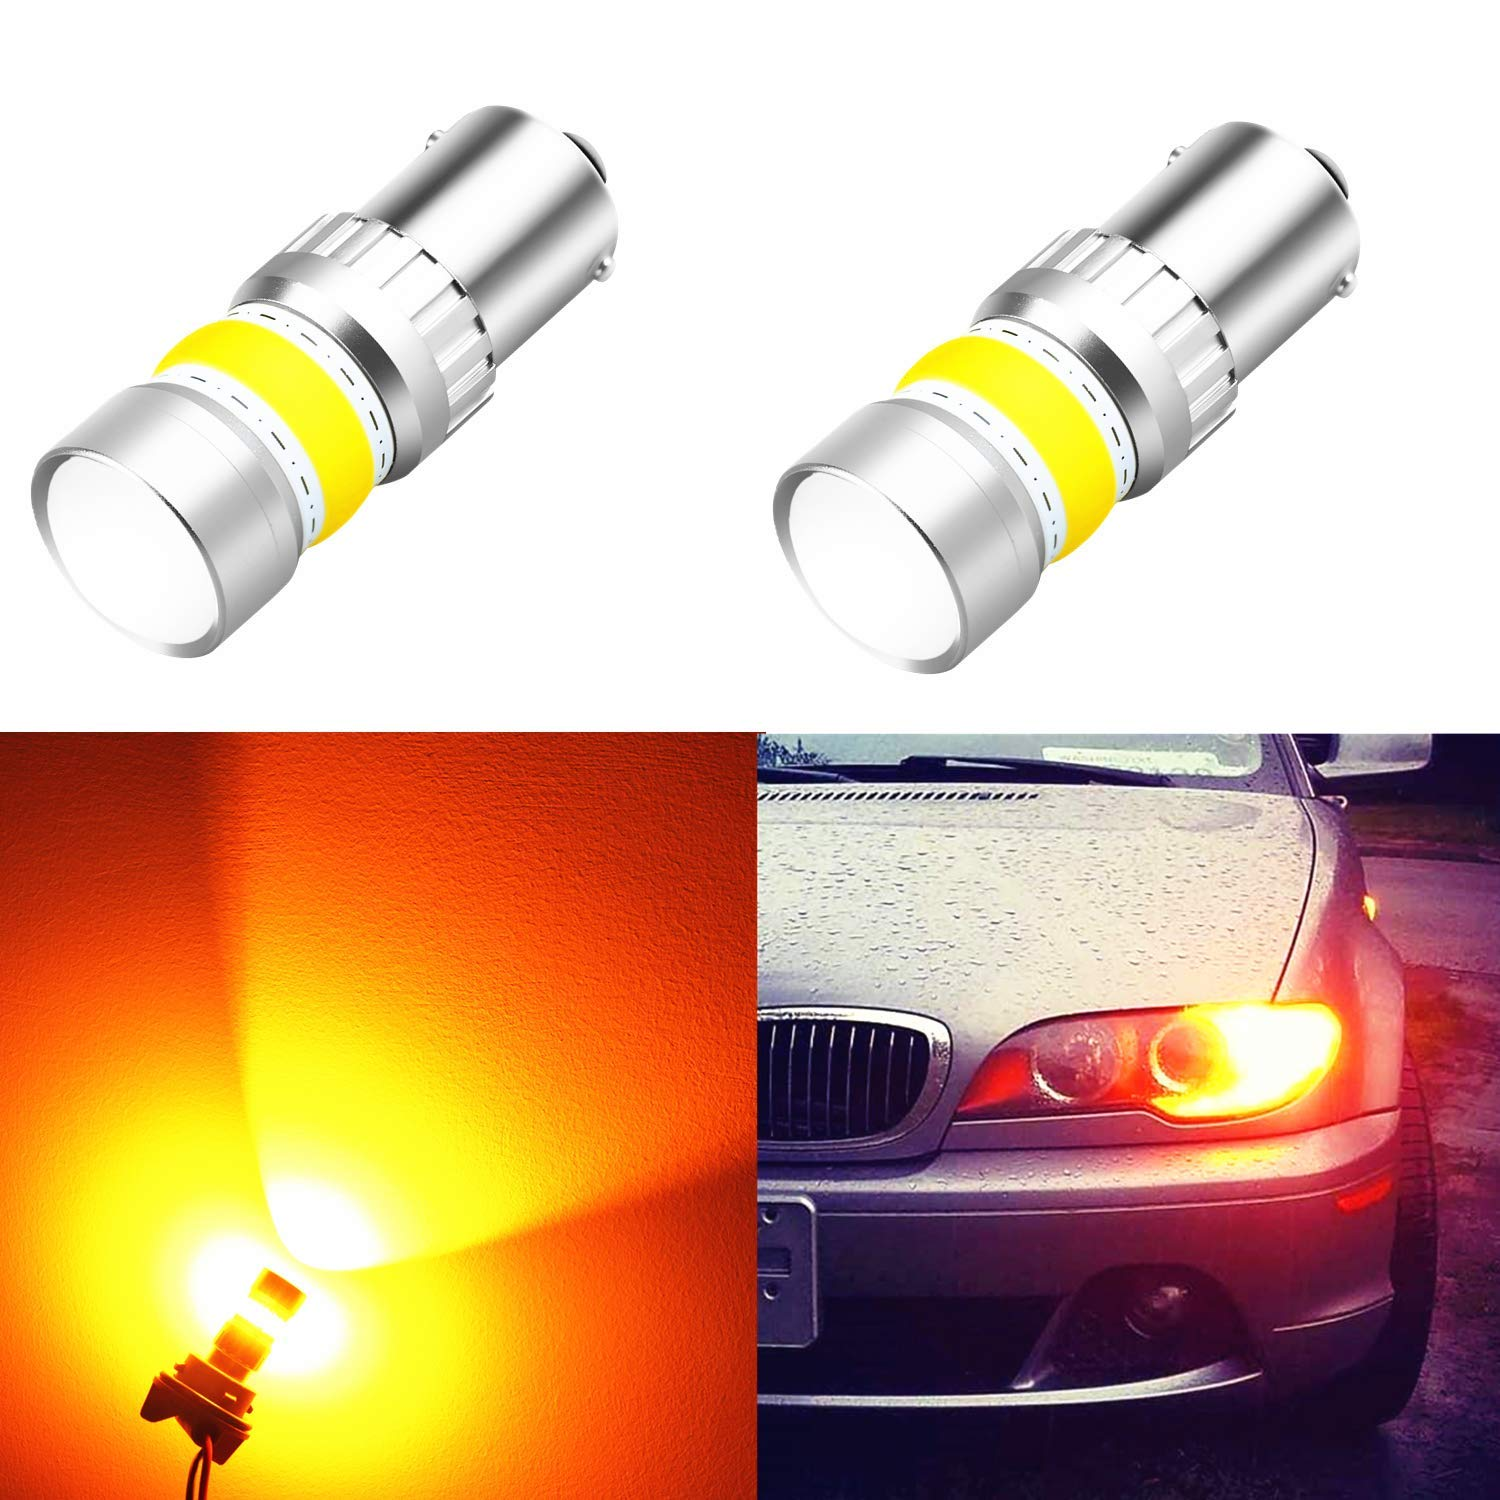 Alla Lighting 1156 LED Turn Signal Light Bulbs 2800lm Xtreme Super Bright BA15S 7506 1156 LED Bulbs High Power COB 72-SMD LED 1156 Bulbs for Turn Signal Light Lamp Replacement, Amber Yellow